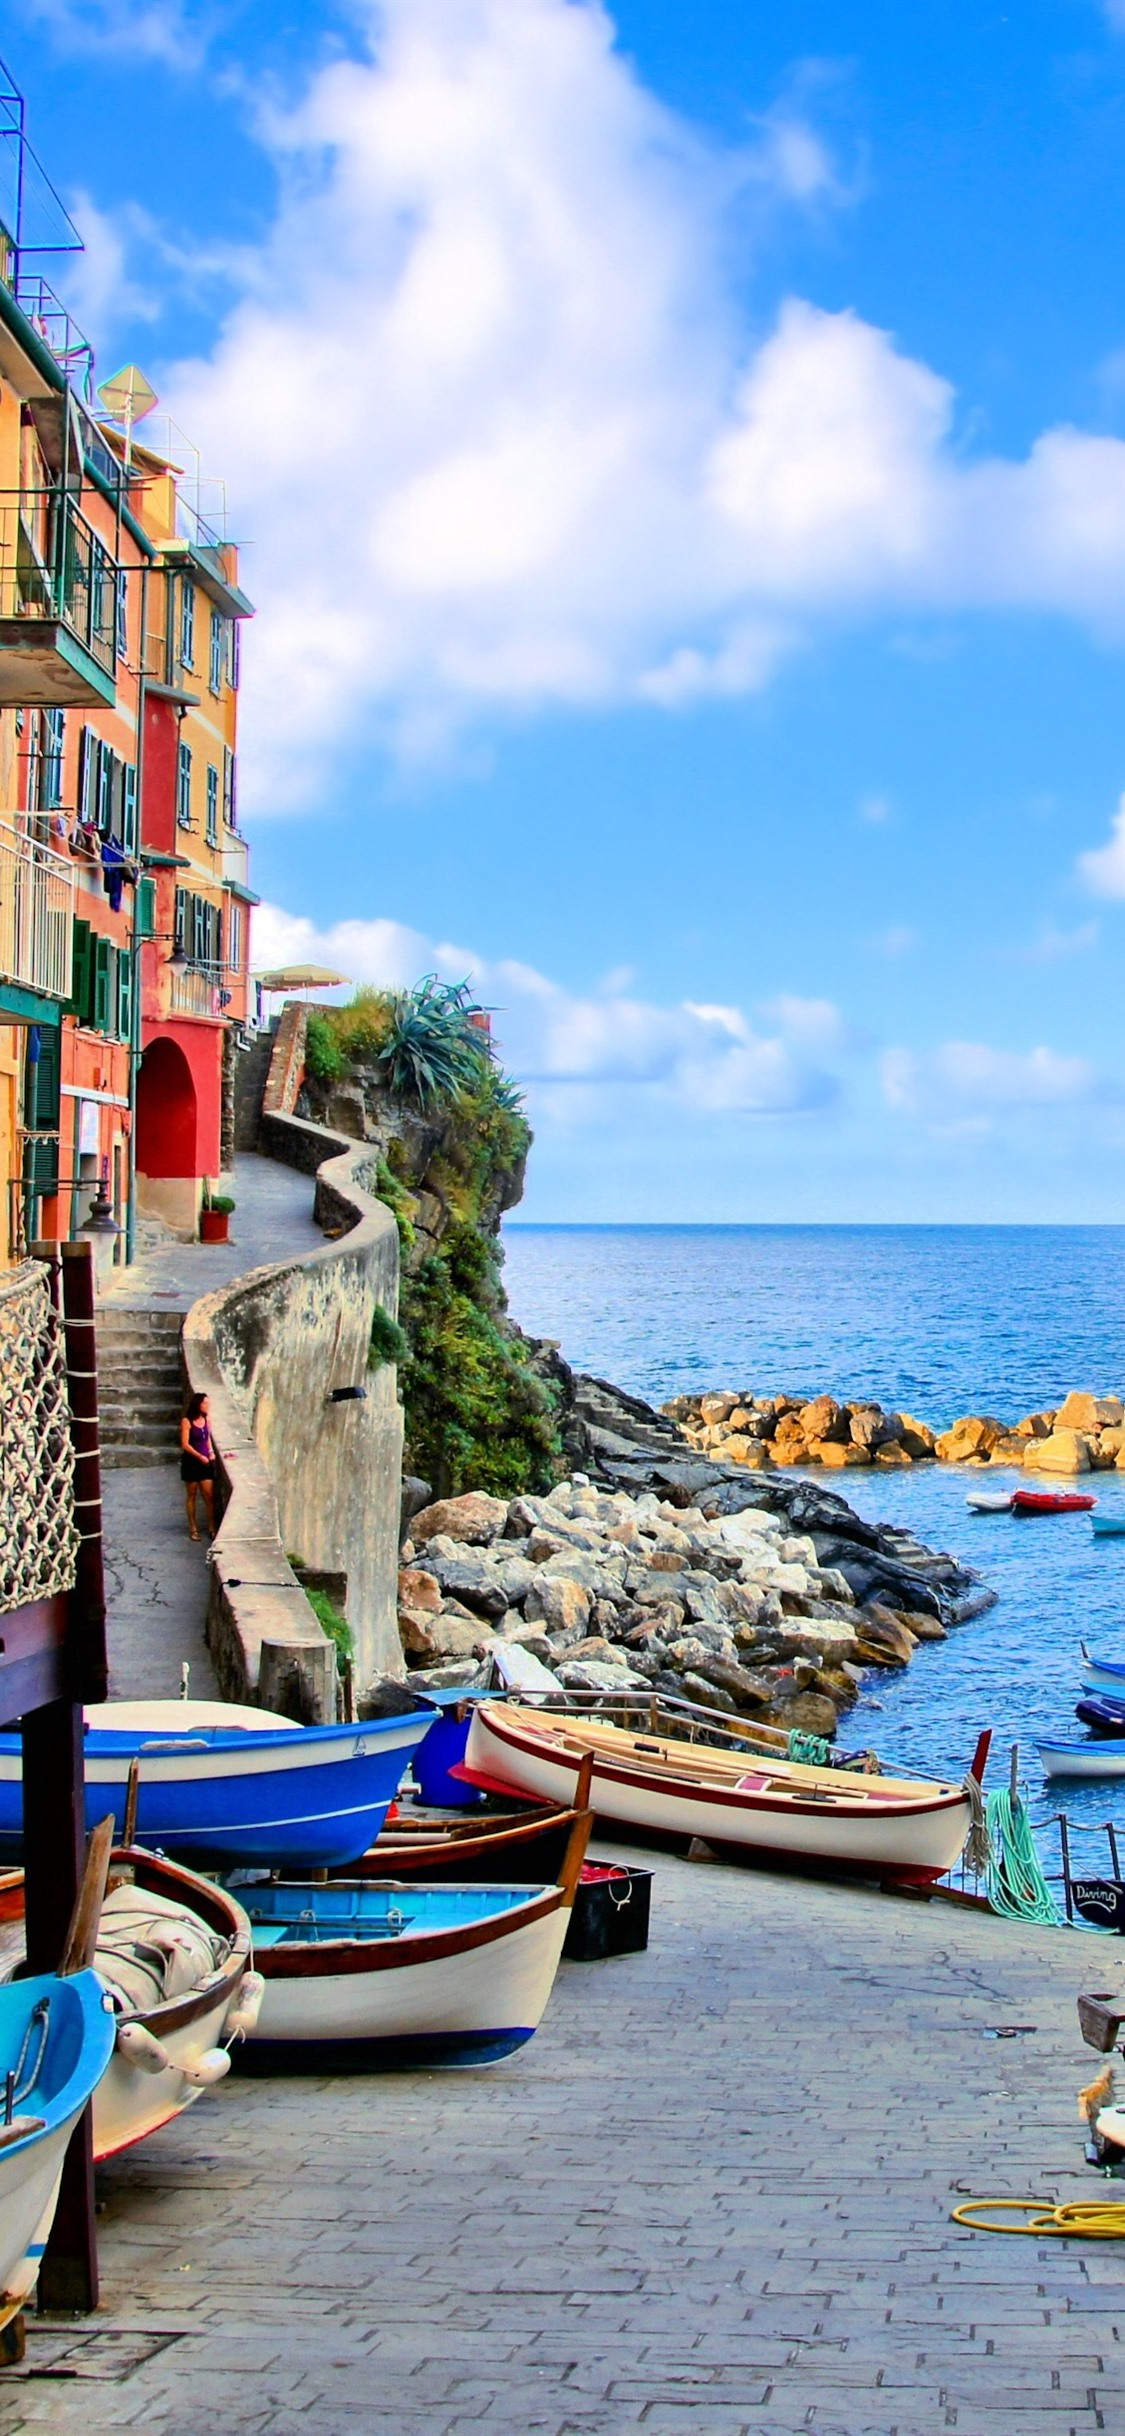 Italy Riomaggiore Houses Boats Sea 1125x2436 Iphone 11 Pro Xs X Wallpaper Background Picture Image